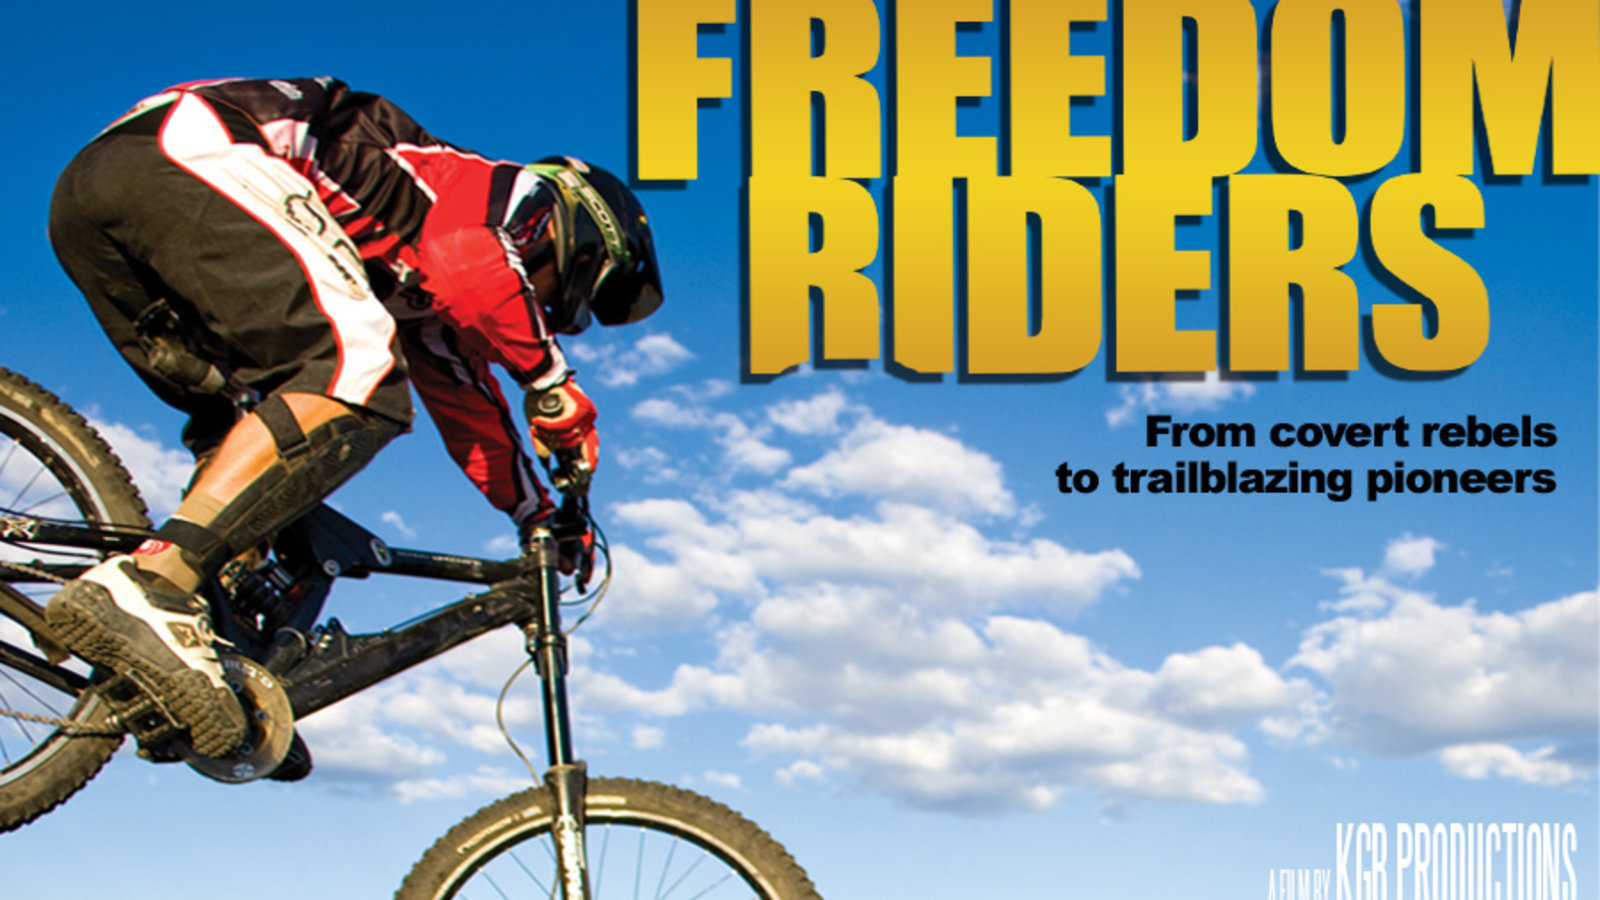 Freedom Riders - Pioneers of Mountain Biking